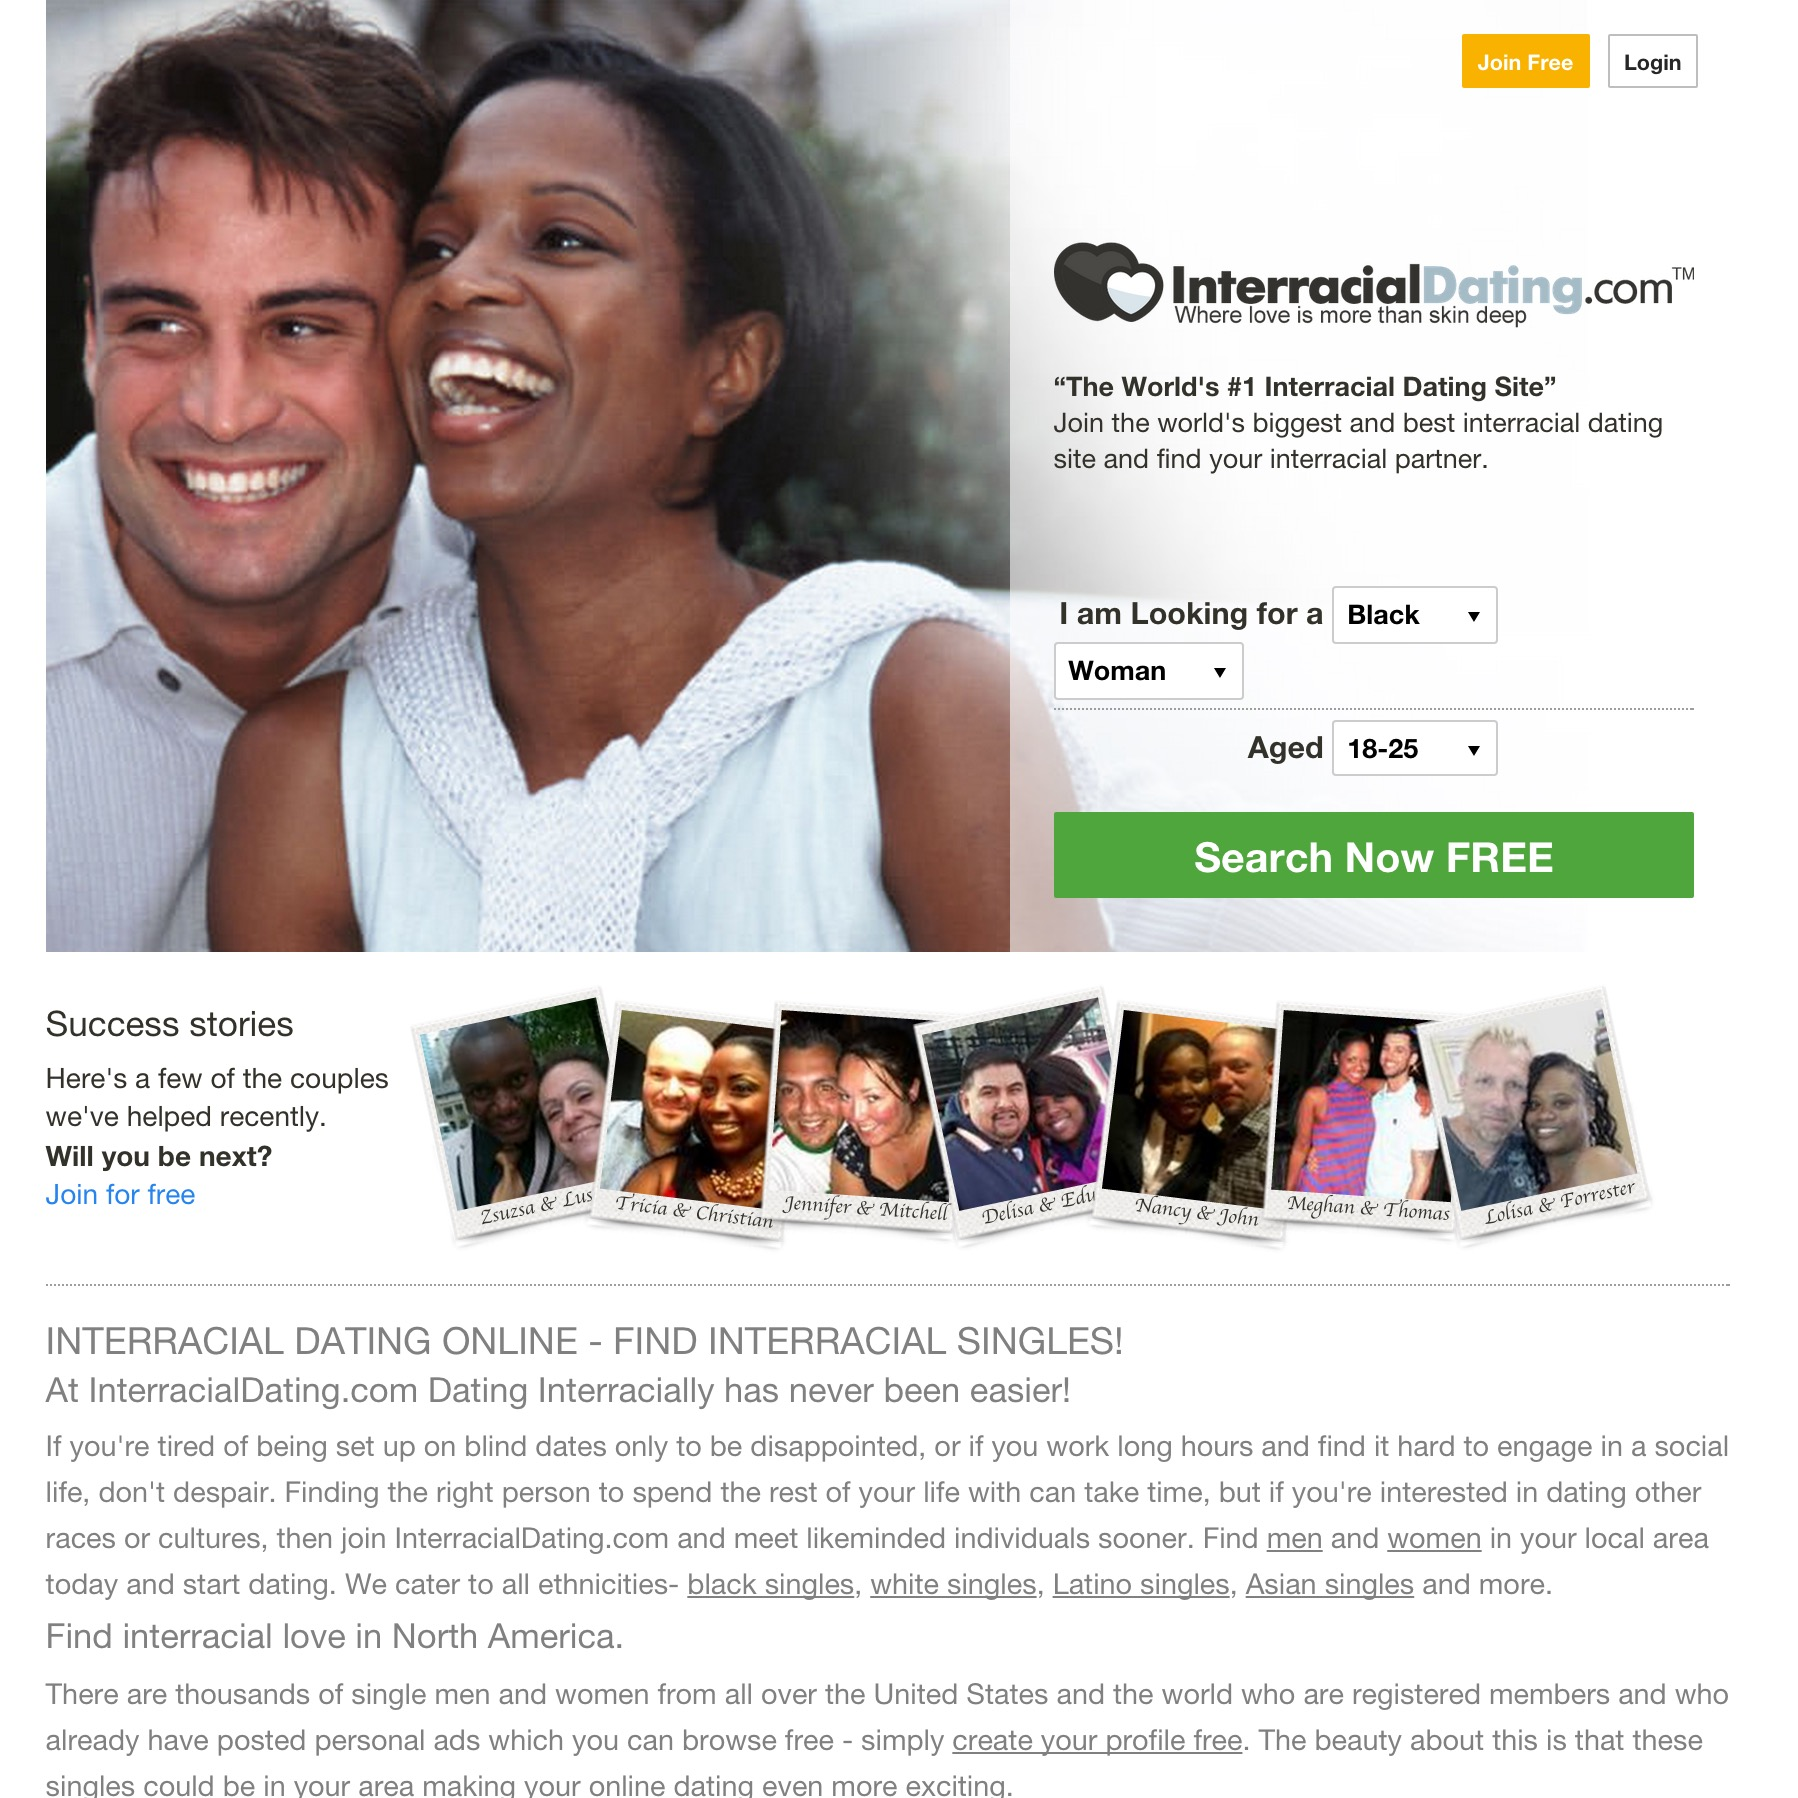 Free interracial dating chat rooms